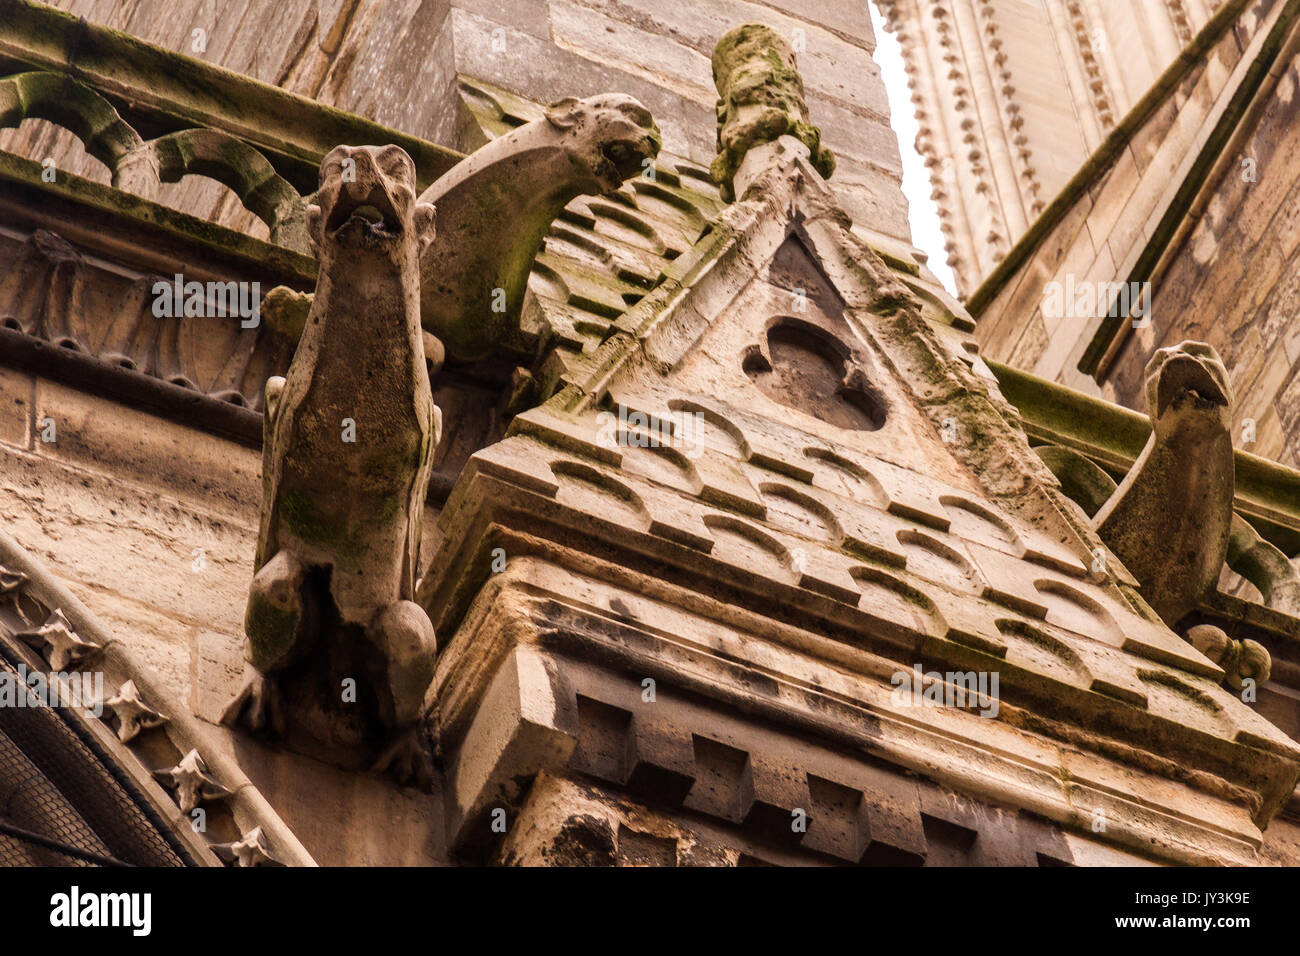 Ancient Gothic Architecture Detail Gargouille Monster On The Wall Of Notre Dame De Paris Cathedral In France Which Is Landmark And Touristic S